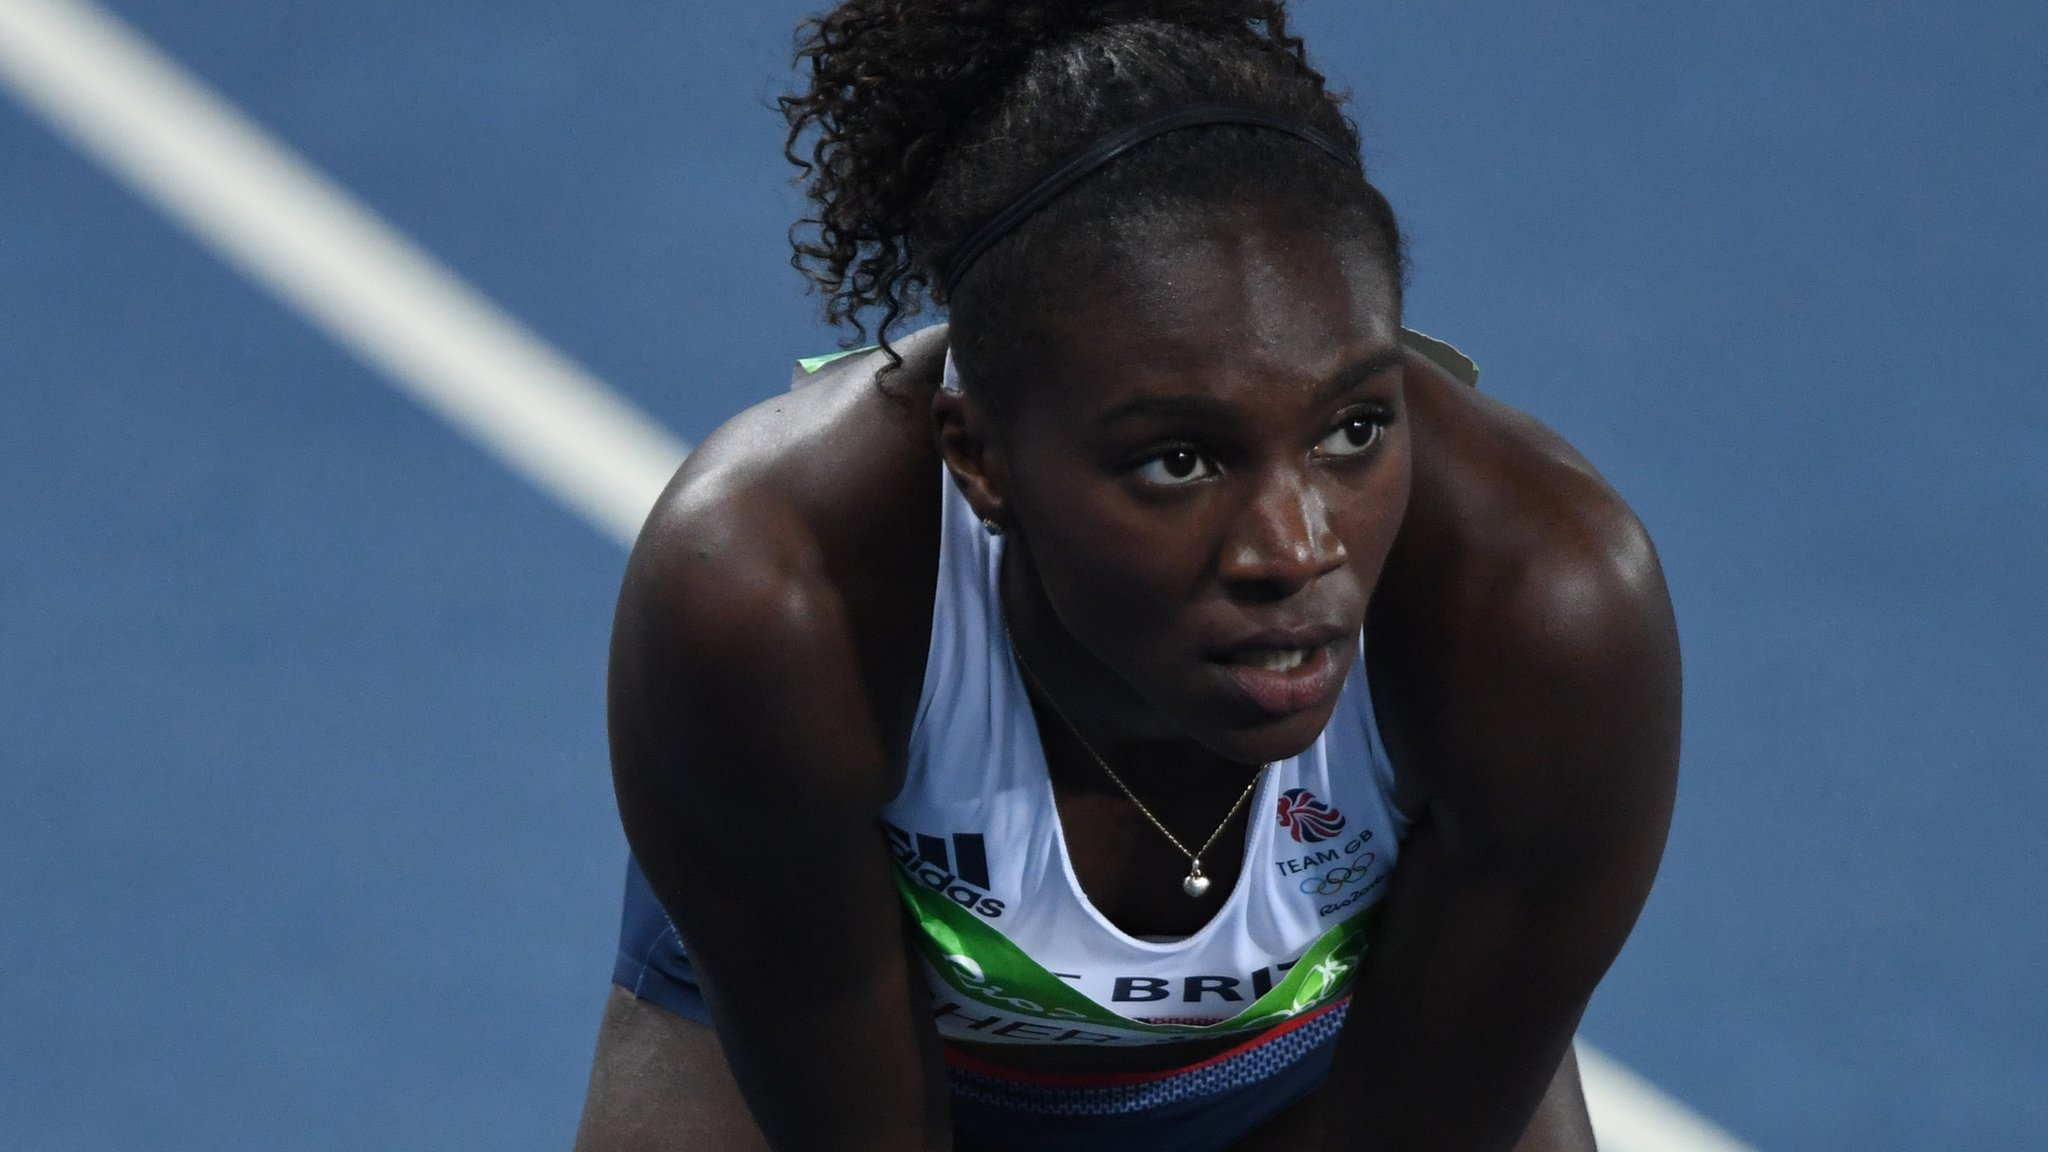 Dina Asher-Smith breaks foot in final training session before Indoor Grand Prix